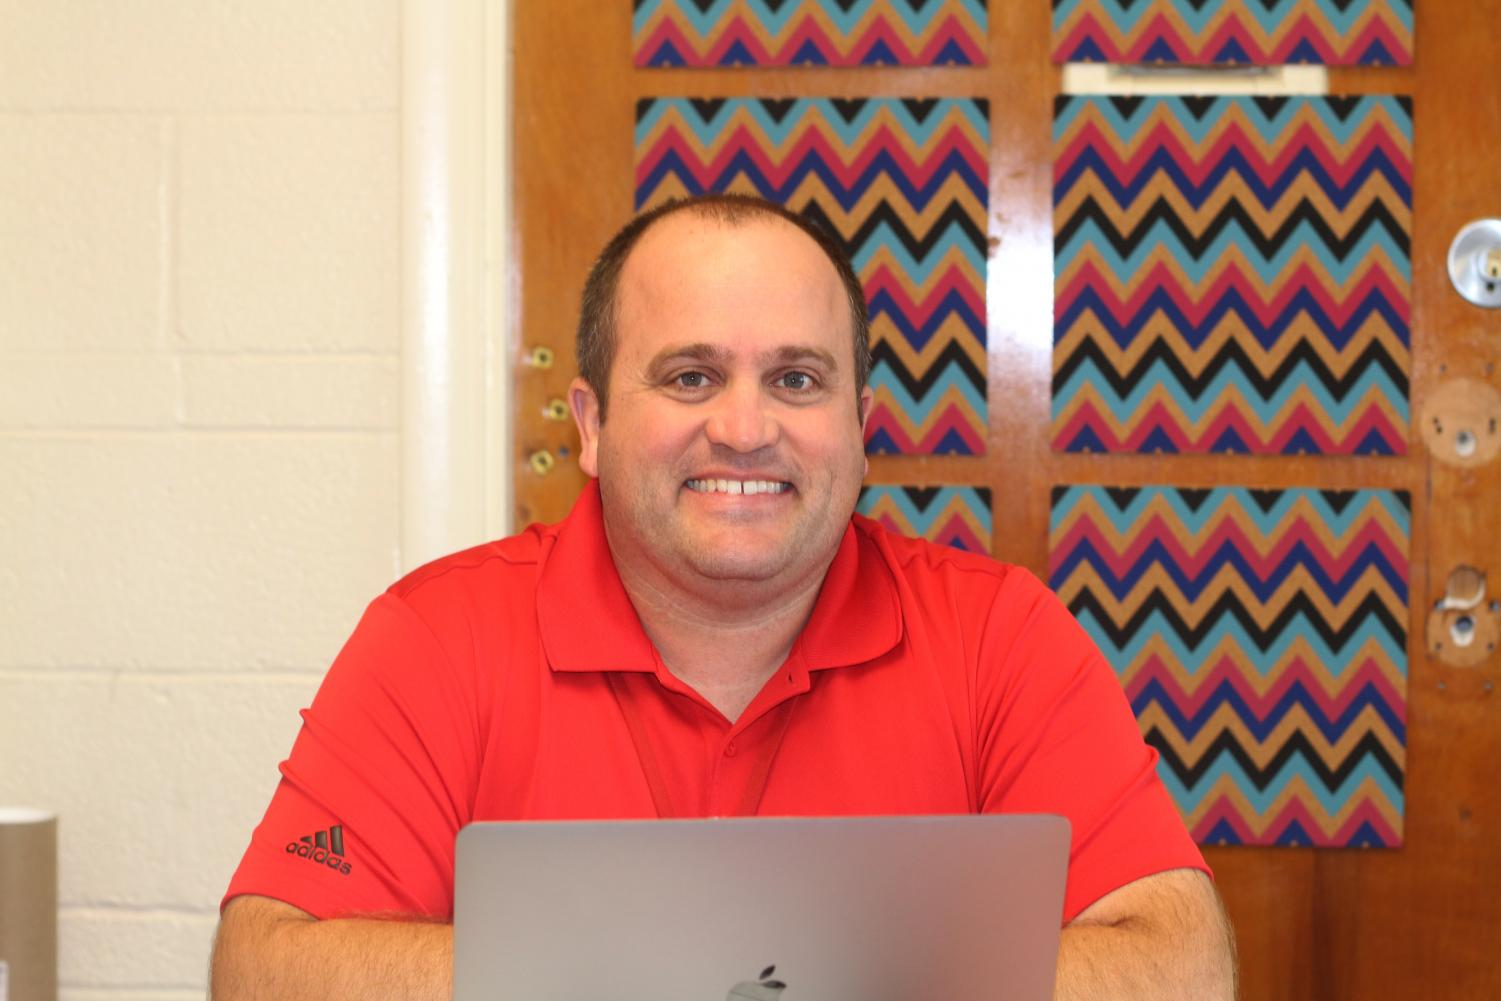 Turley taught at KHS for six years before moving to Clayton High School for two years.